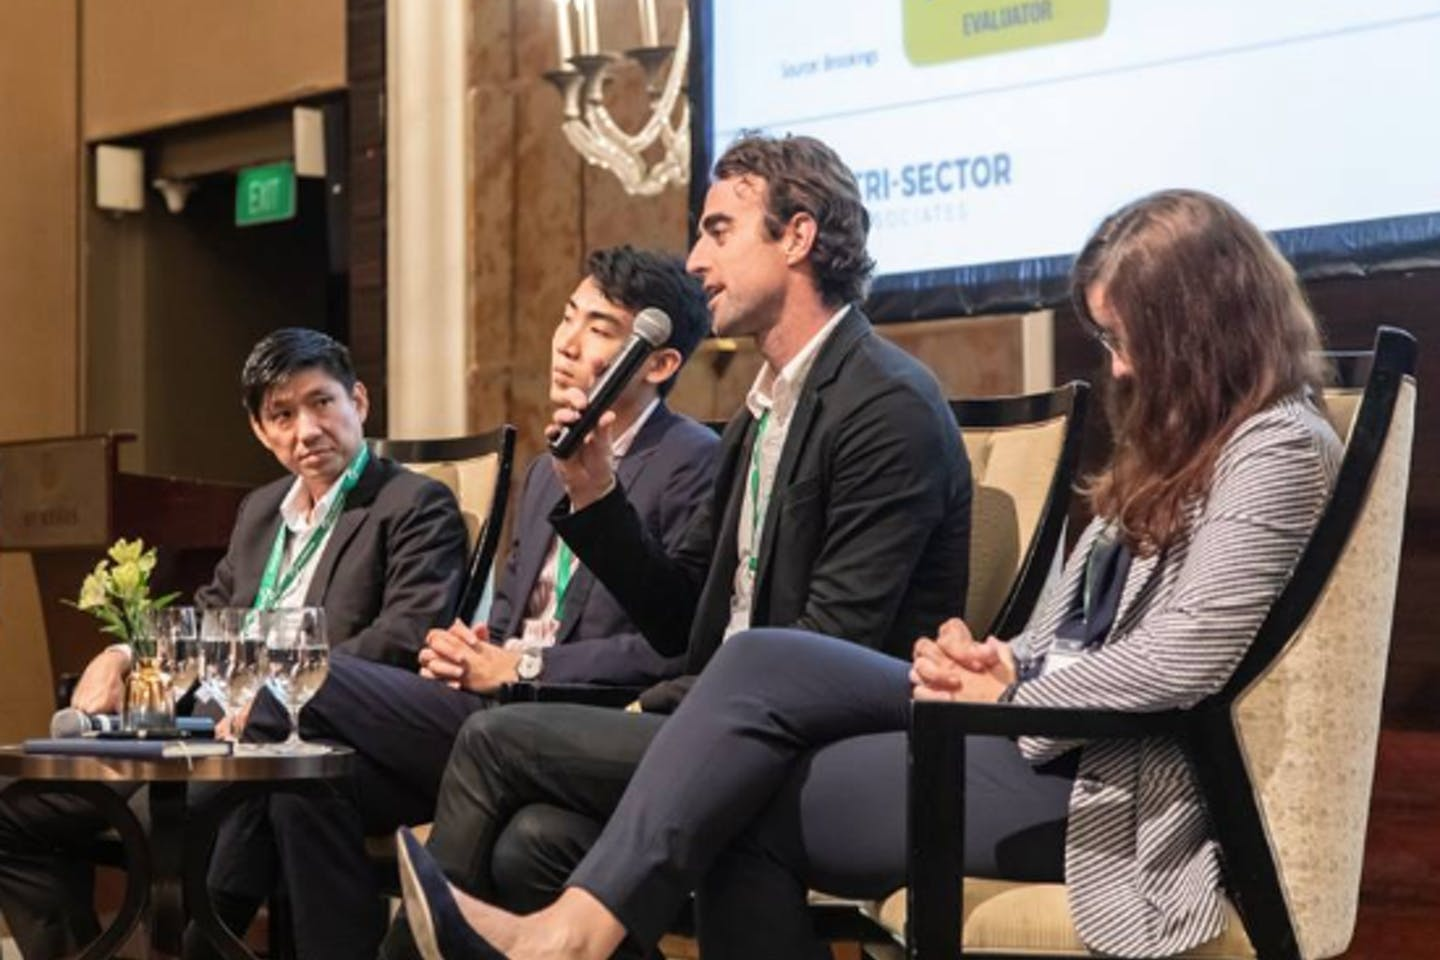 Brian Reilly, founder and chief executive of Revolv, talks on a panel at Unlocking Capital for Sustainability. Reilly raised US$500,000 from Hong Kong-based hedge fund Sylebra and is looking to secure more funding to aid the company's launch in Singapore. Image: Eco-Business